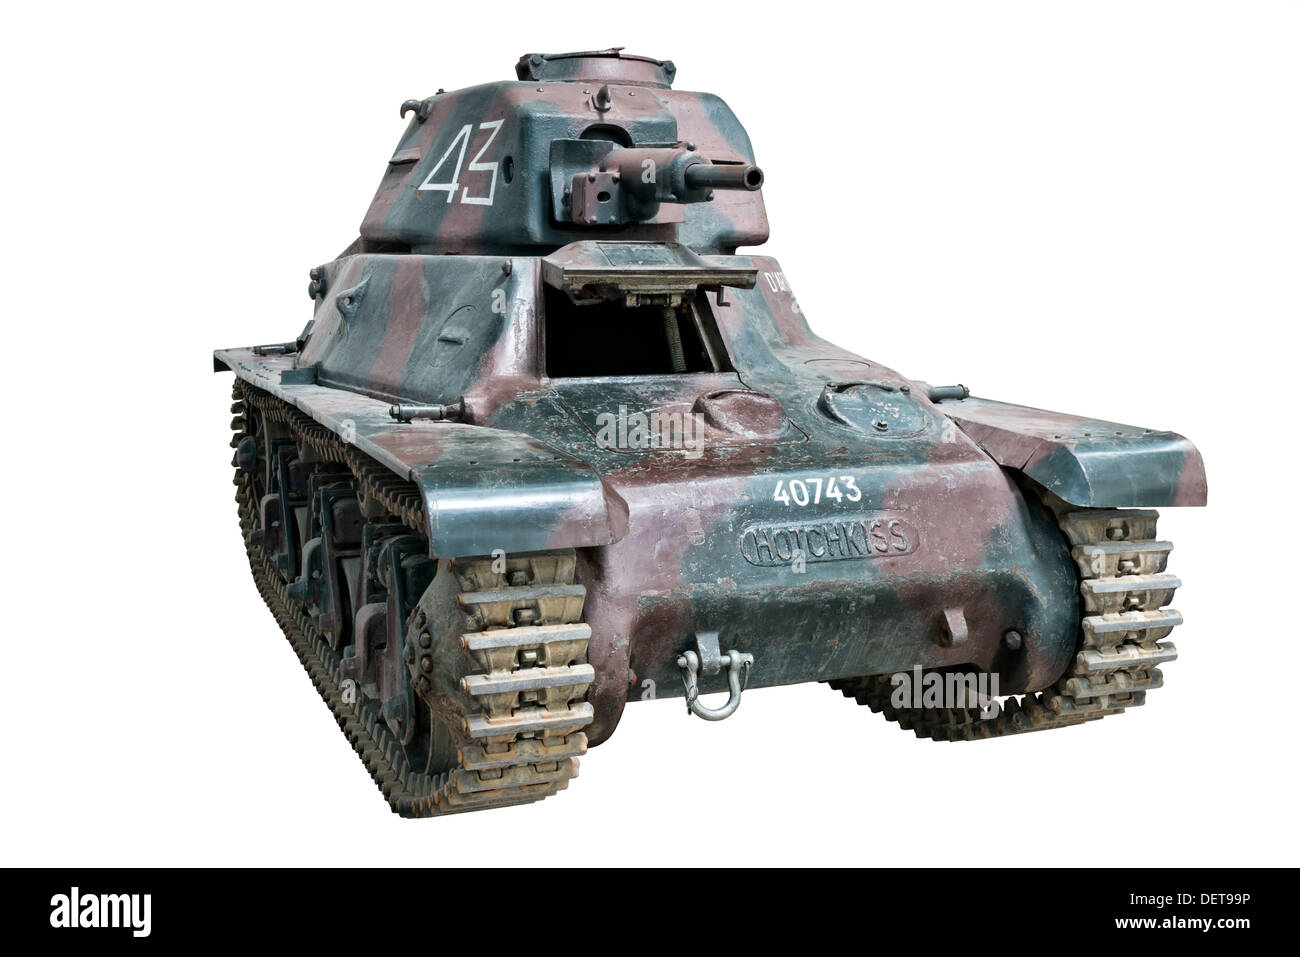 A Hotchkiss H39 light tank used by French forces at the outbreak of WW2 - Stock Image